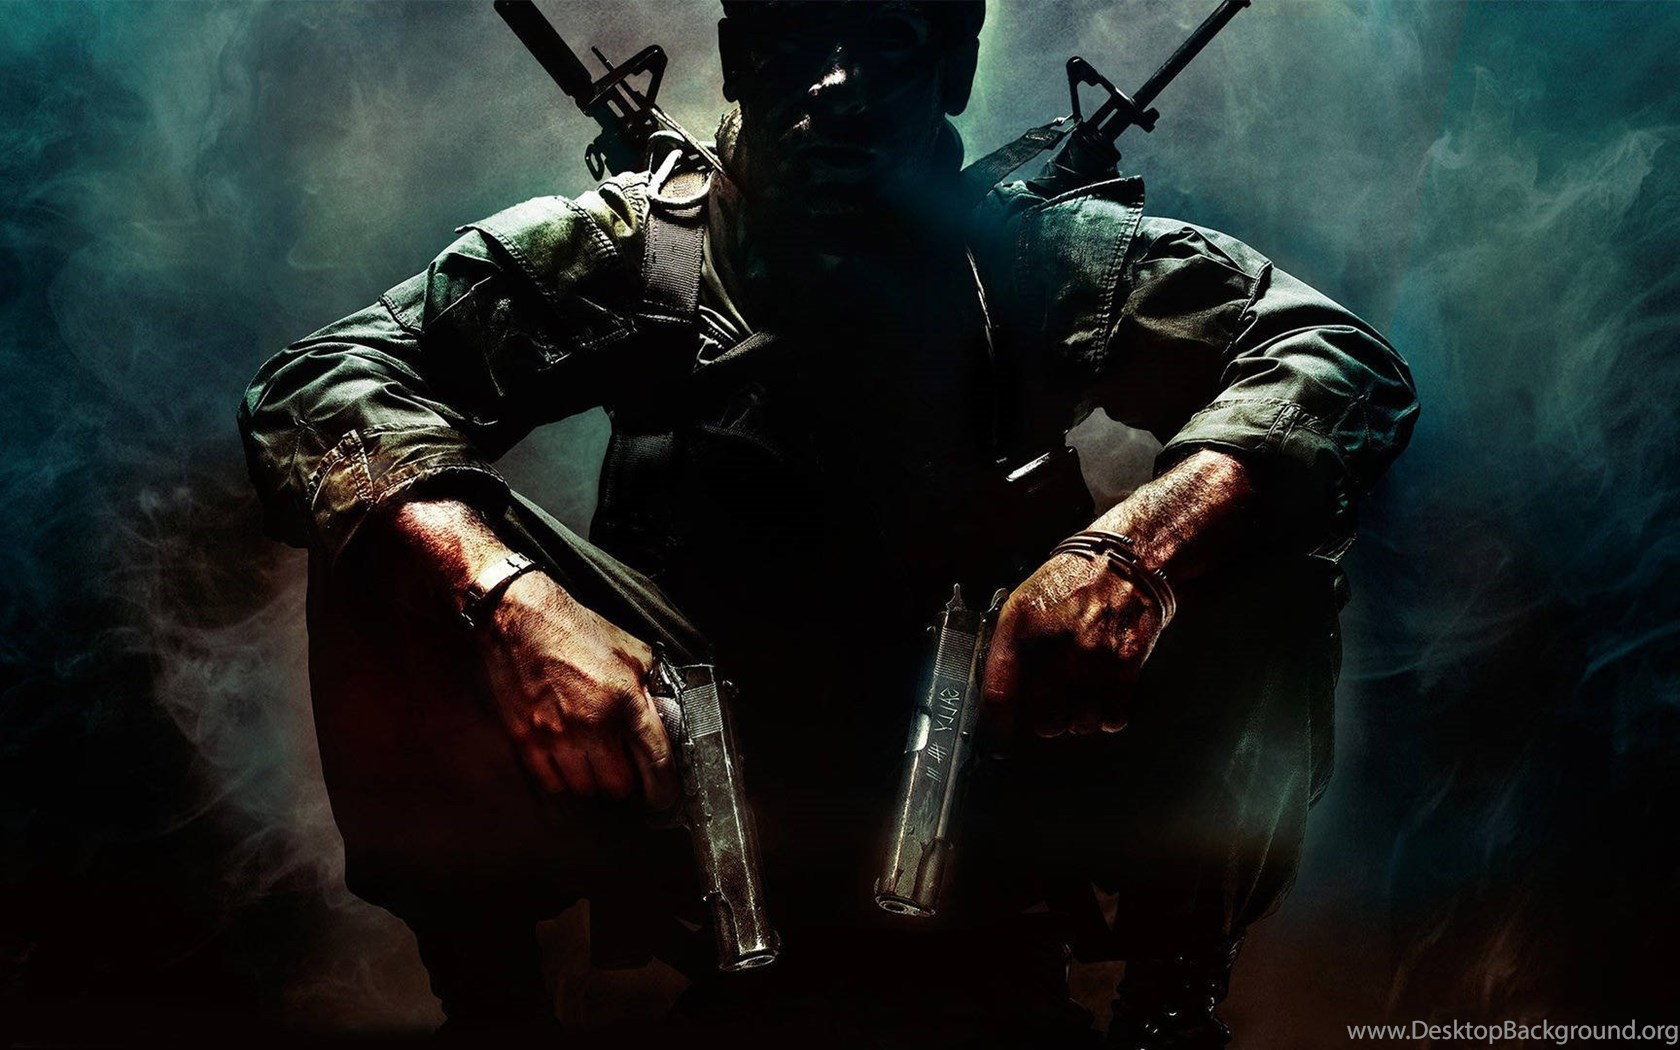 Call Of Duty Black Ops 2 Zombies Wallpapers 4 Image 2 Puzzle